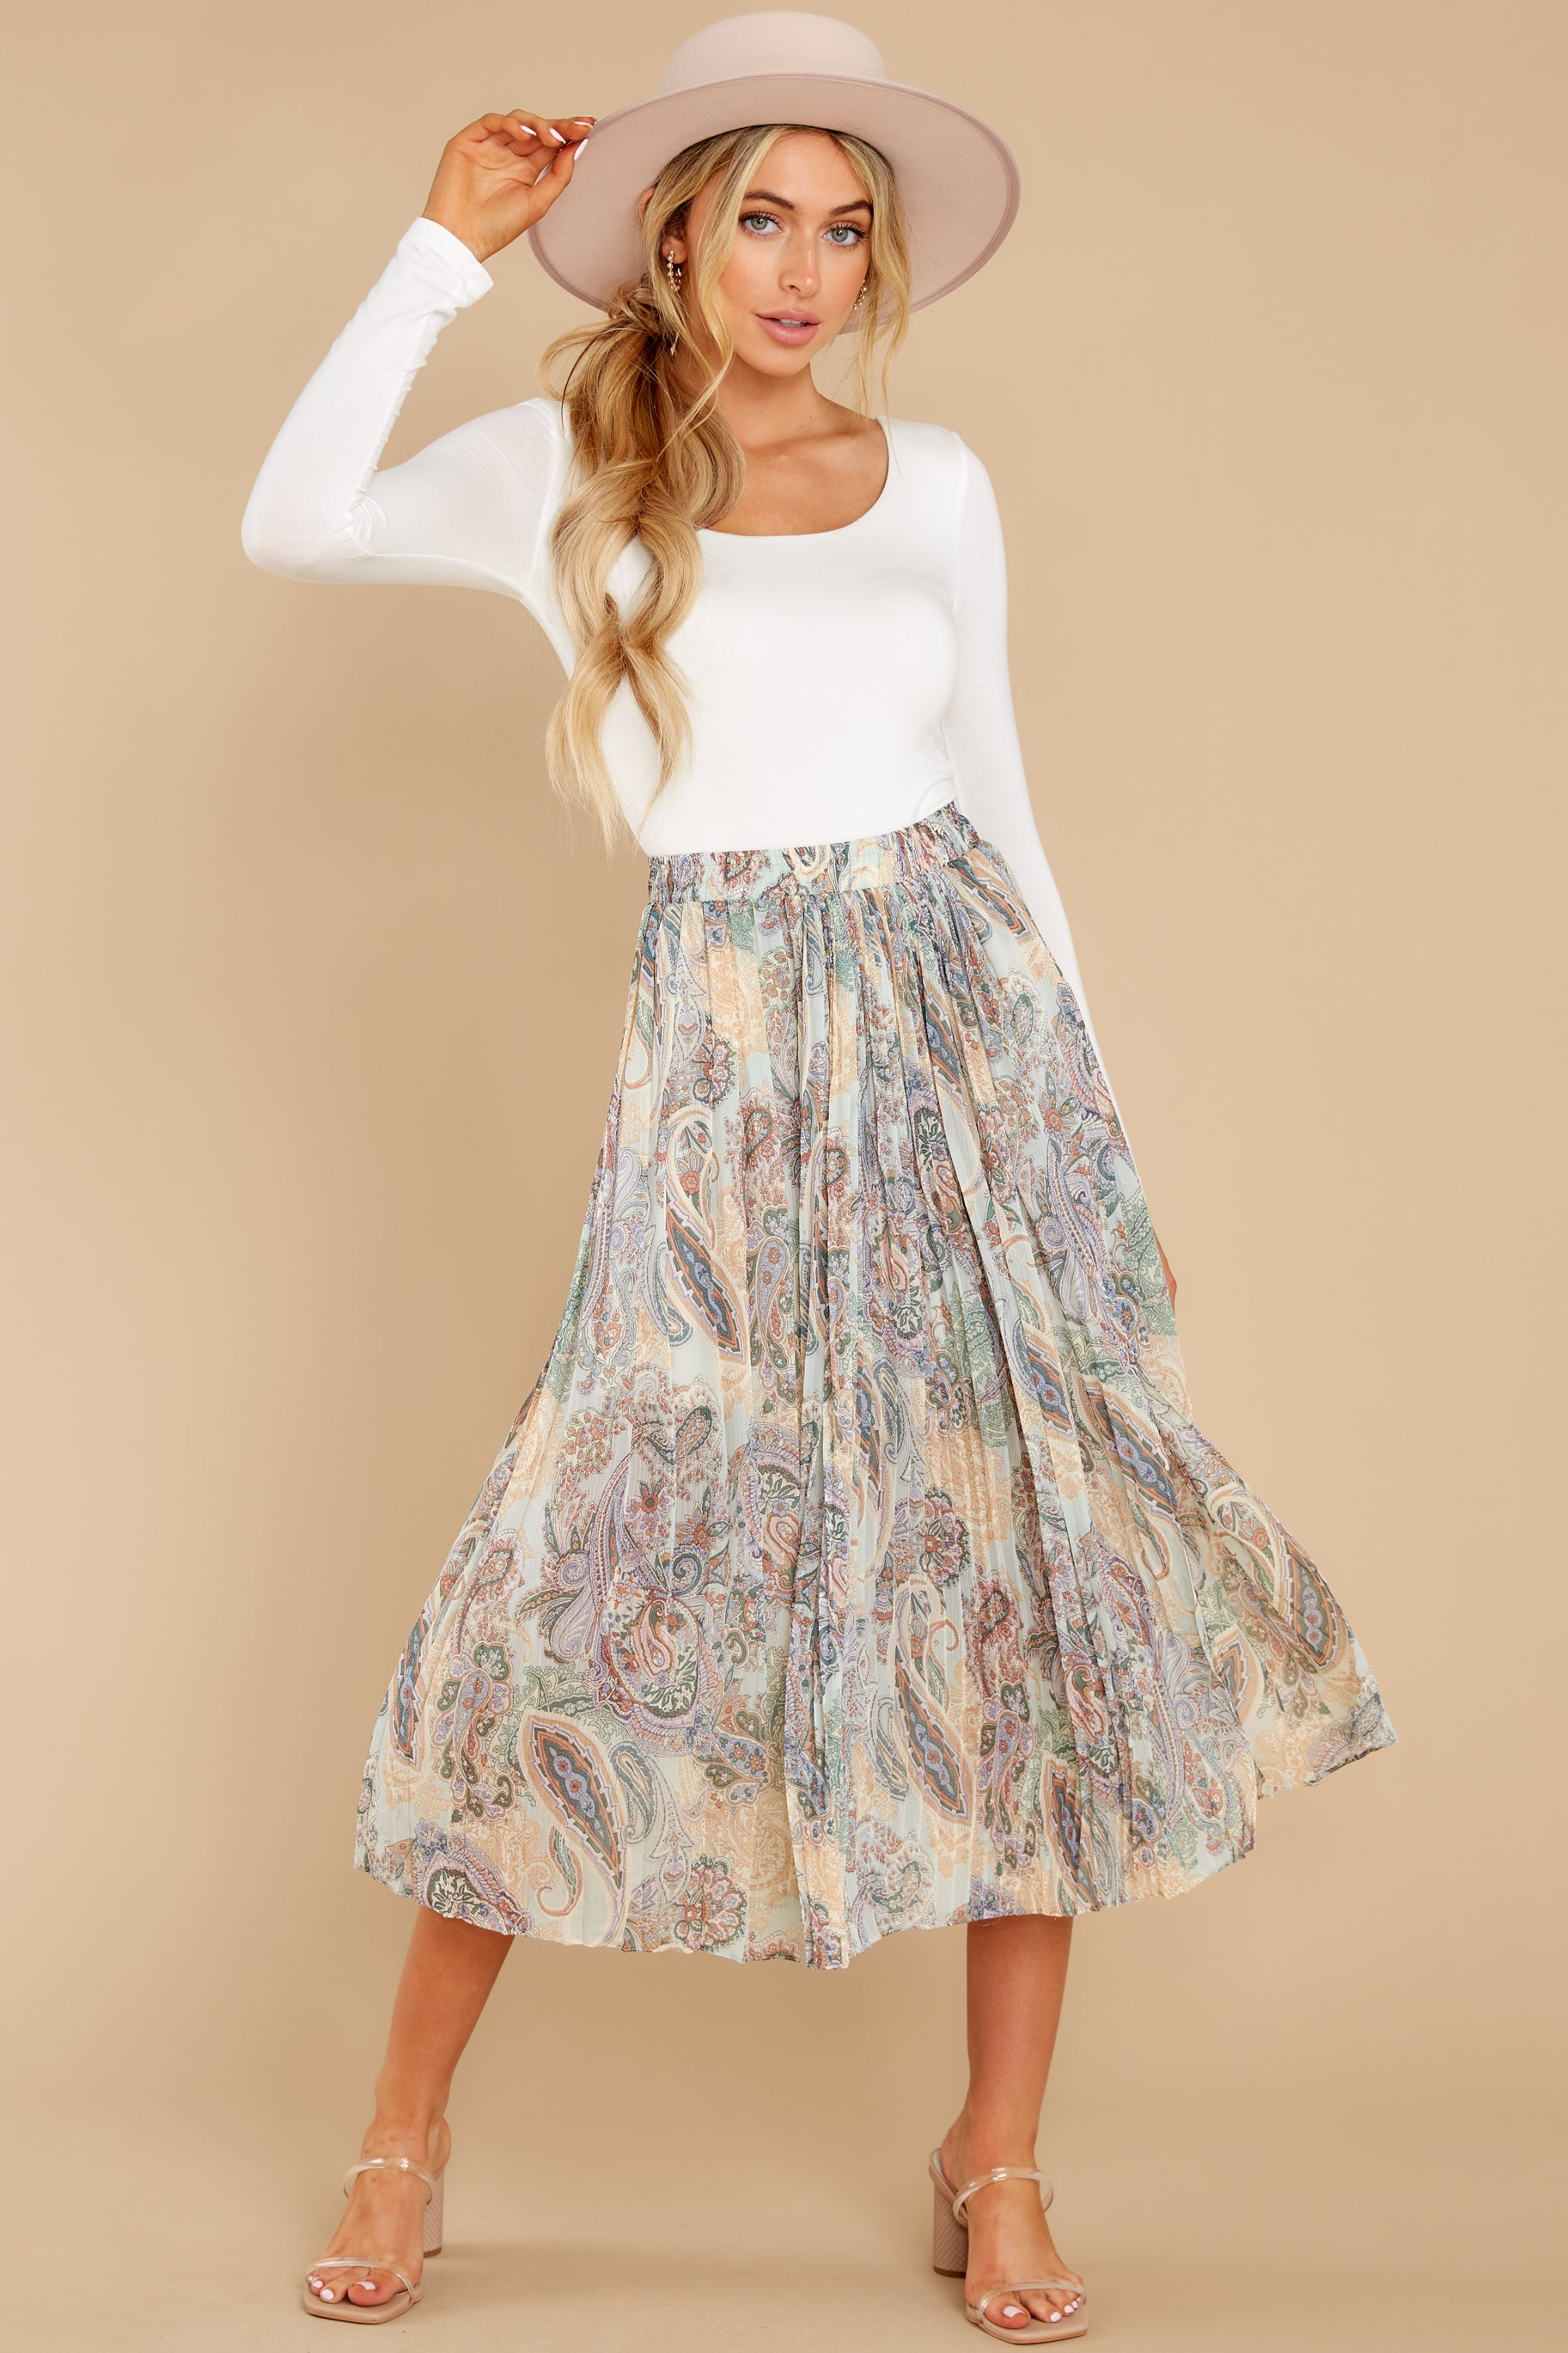 4 In Another Life Mint Paisley Print Midi Skirt at reddress.com